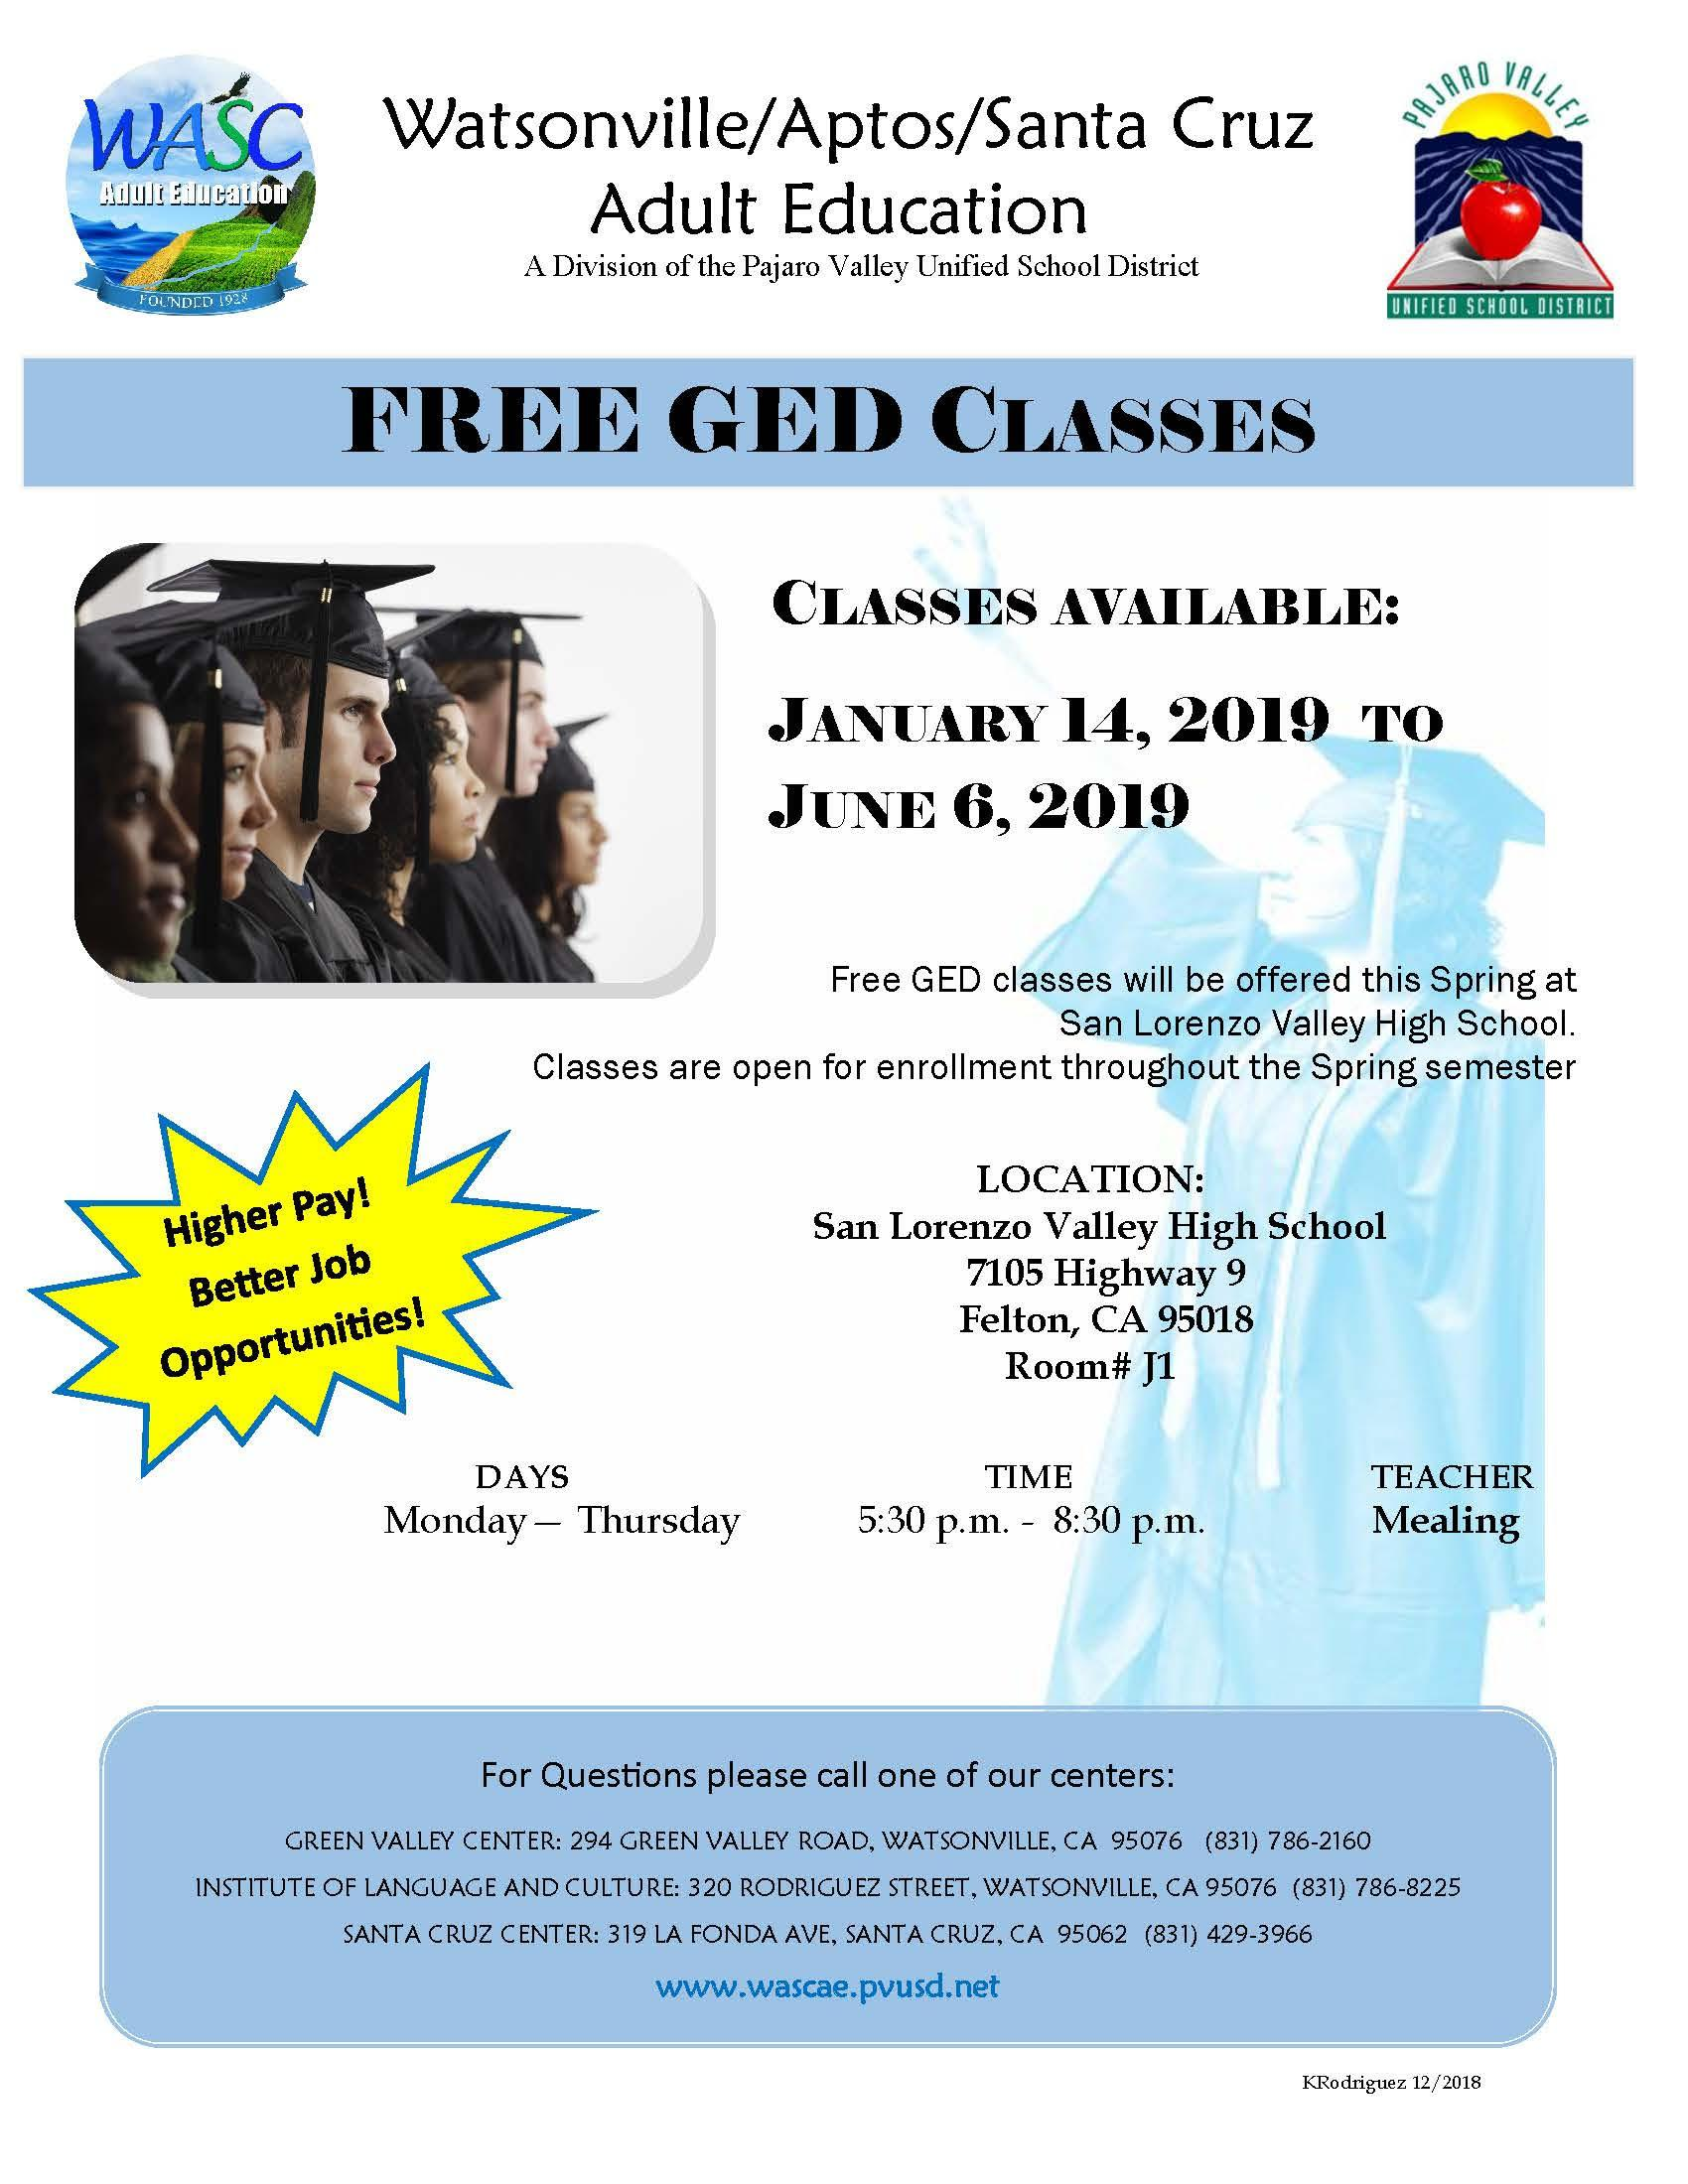 Free GED Classes at SLVHS call429-3966